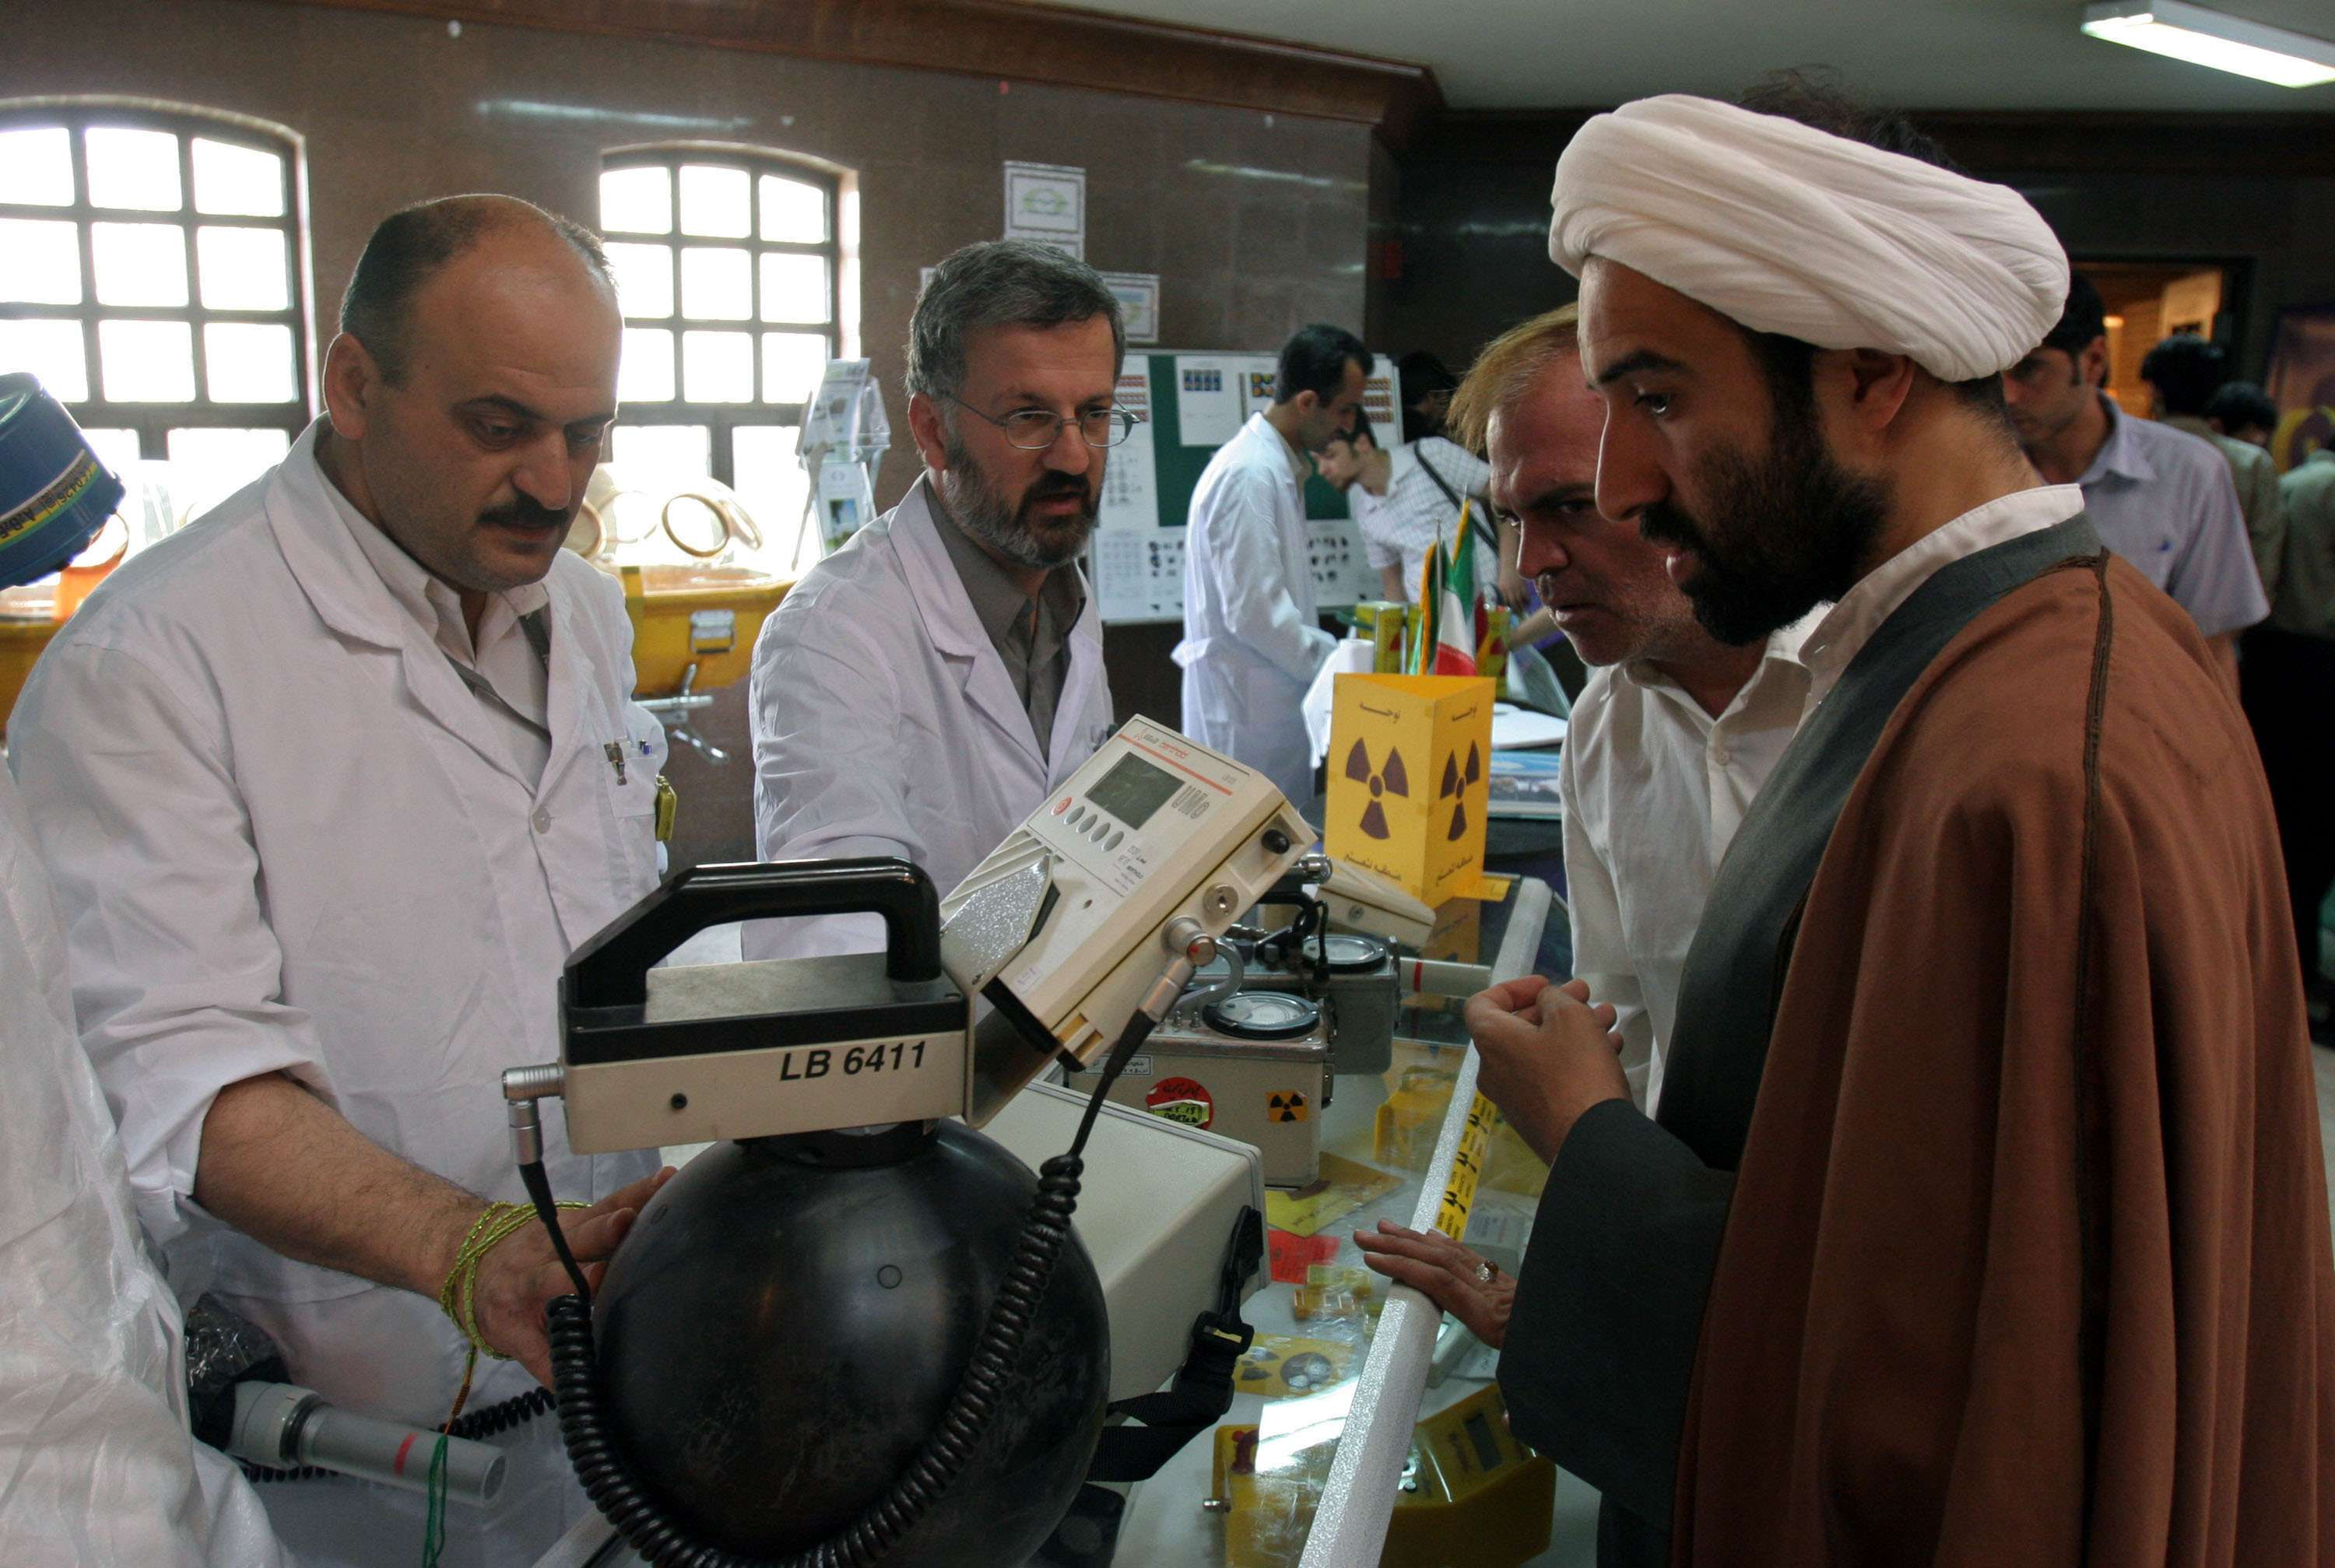 Endless boasting. Iranian technicians explain a piece of equipment to a clergyman during an exhibition at the Qom University, on May 2. (AP)